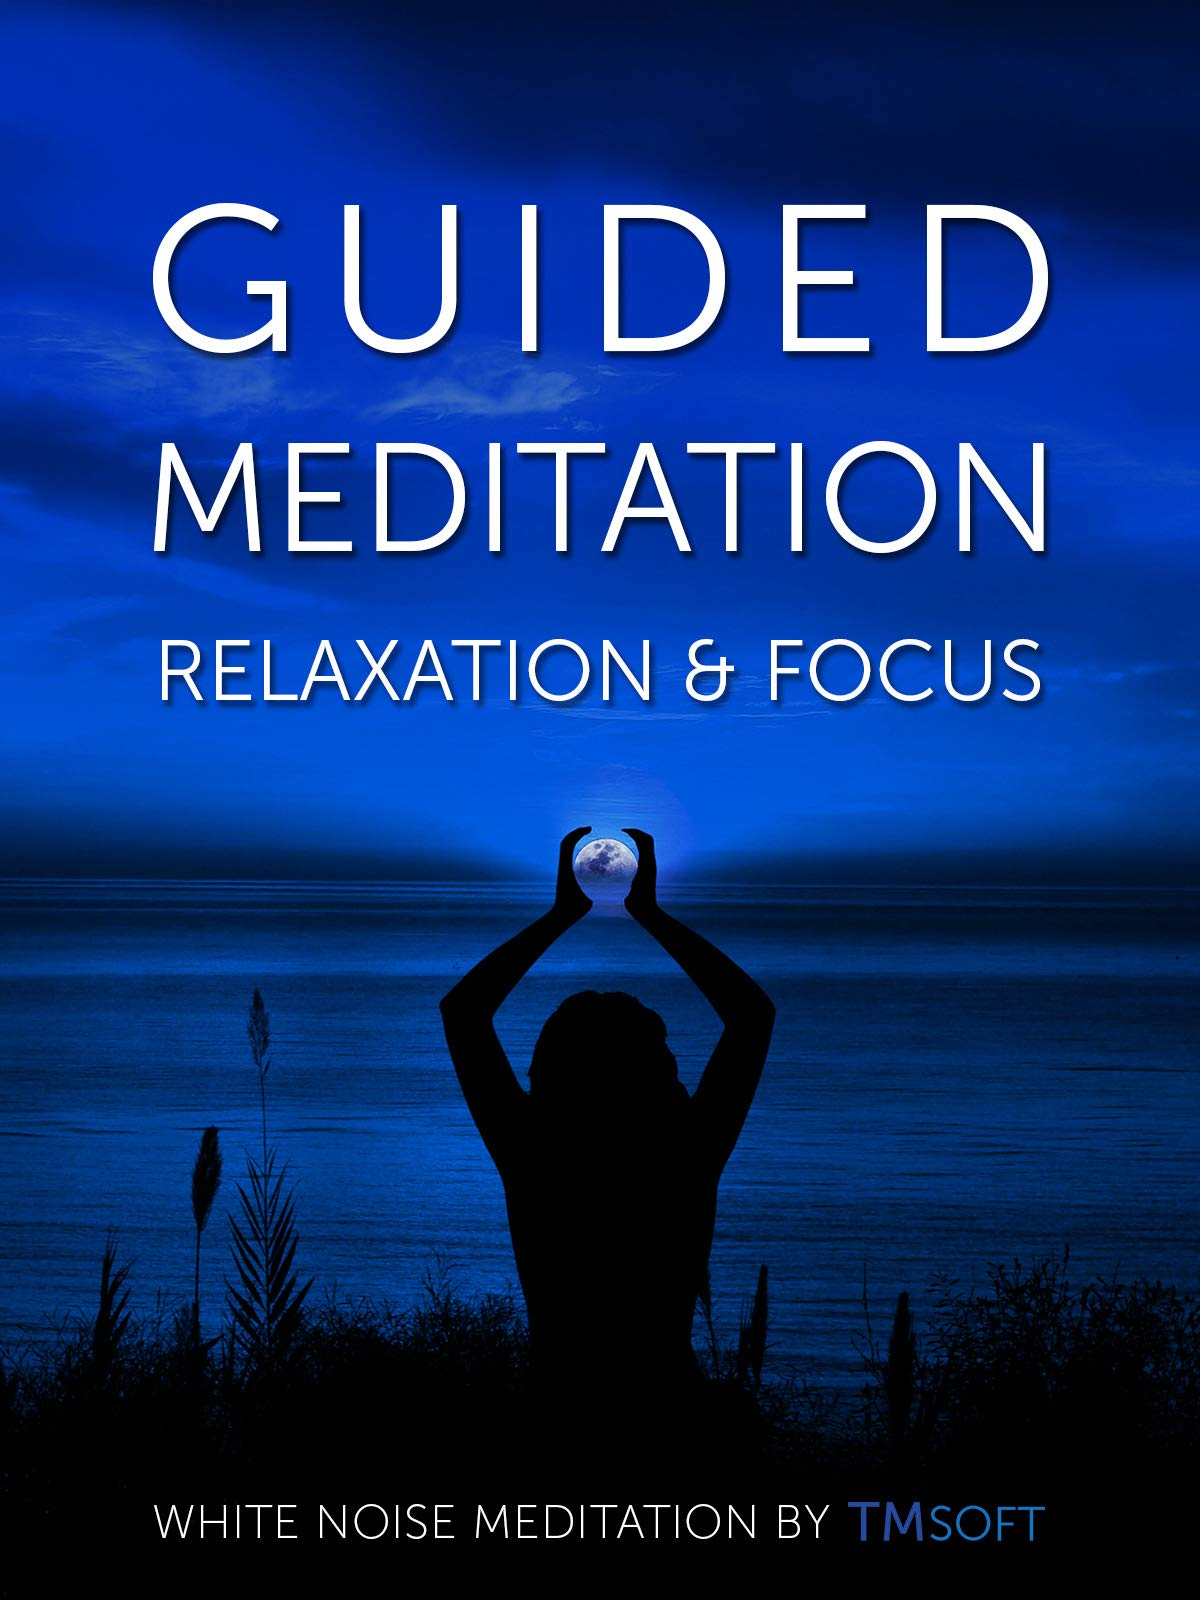 Guided Meditation: Relaxation & Focus